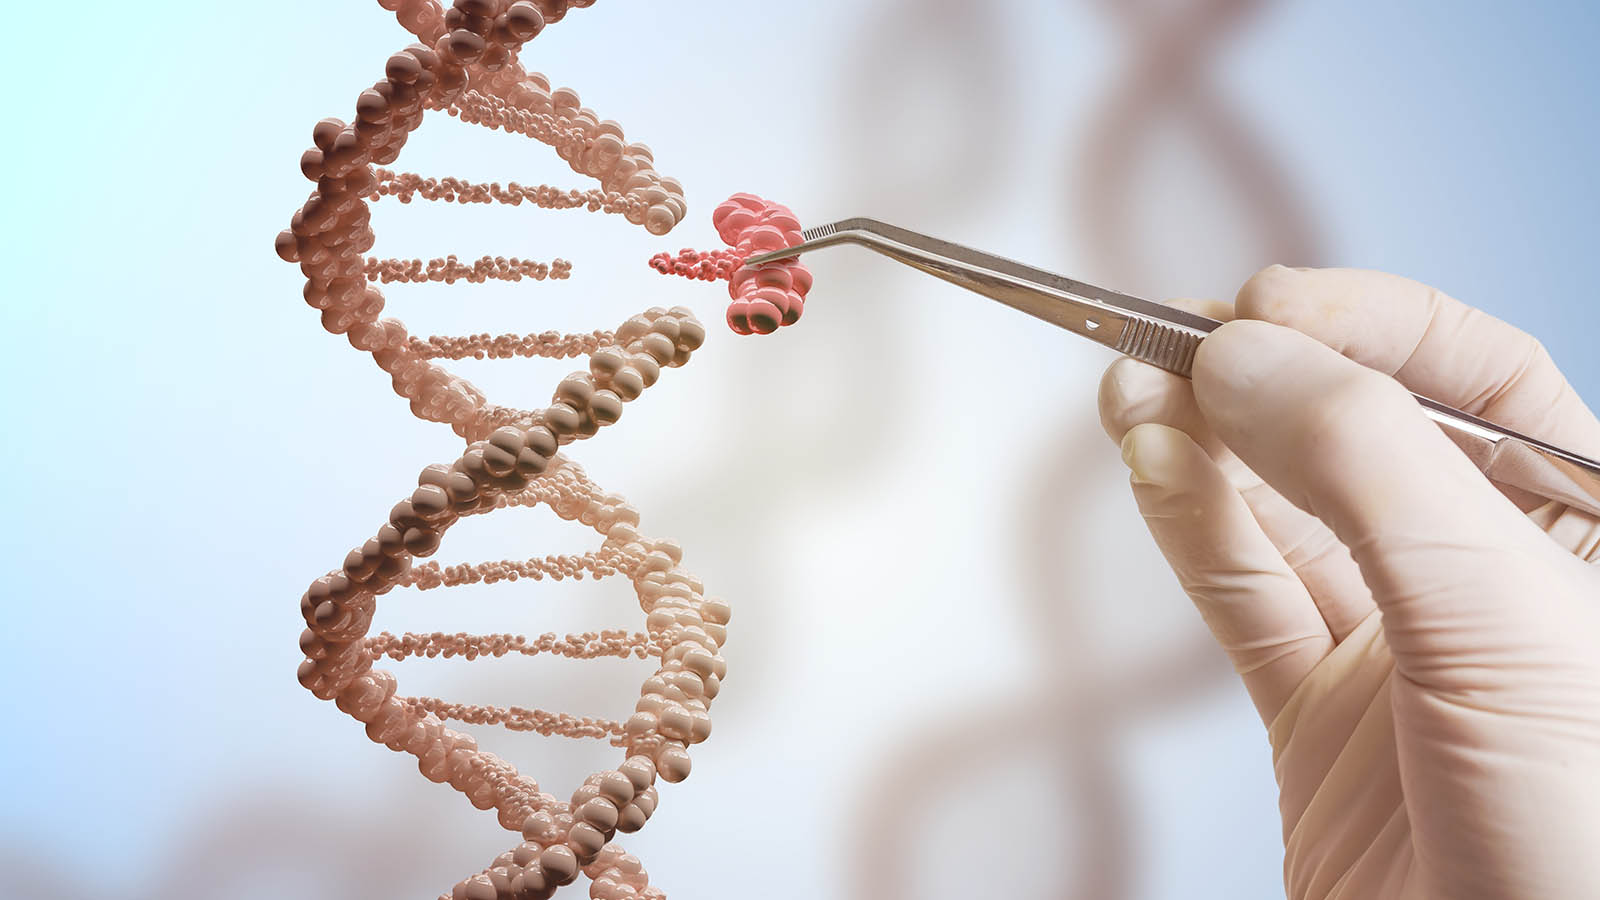 Editas Medicine Could Skyrocket if Its Gene Editing Therapy Proves Successful